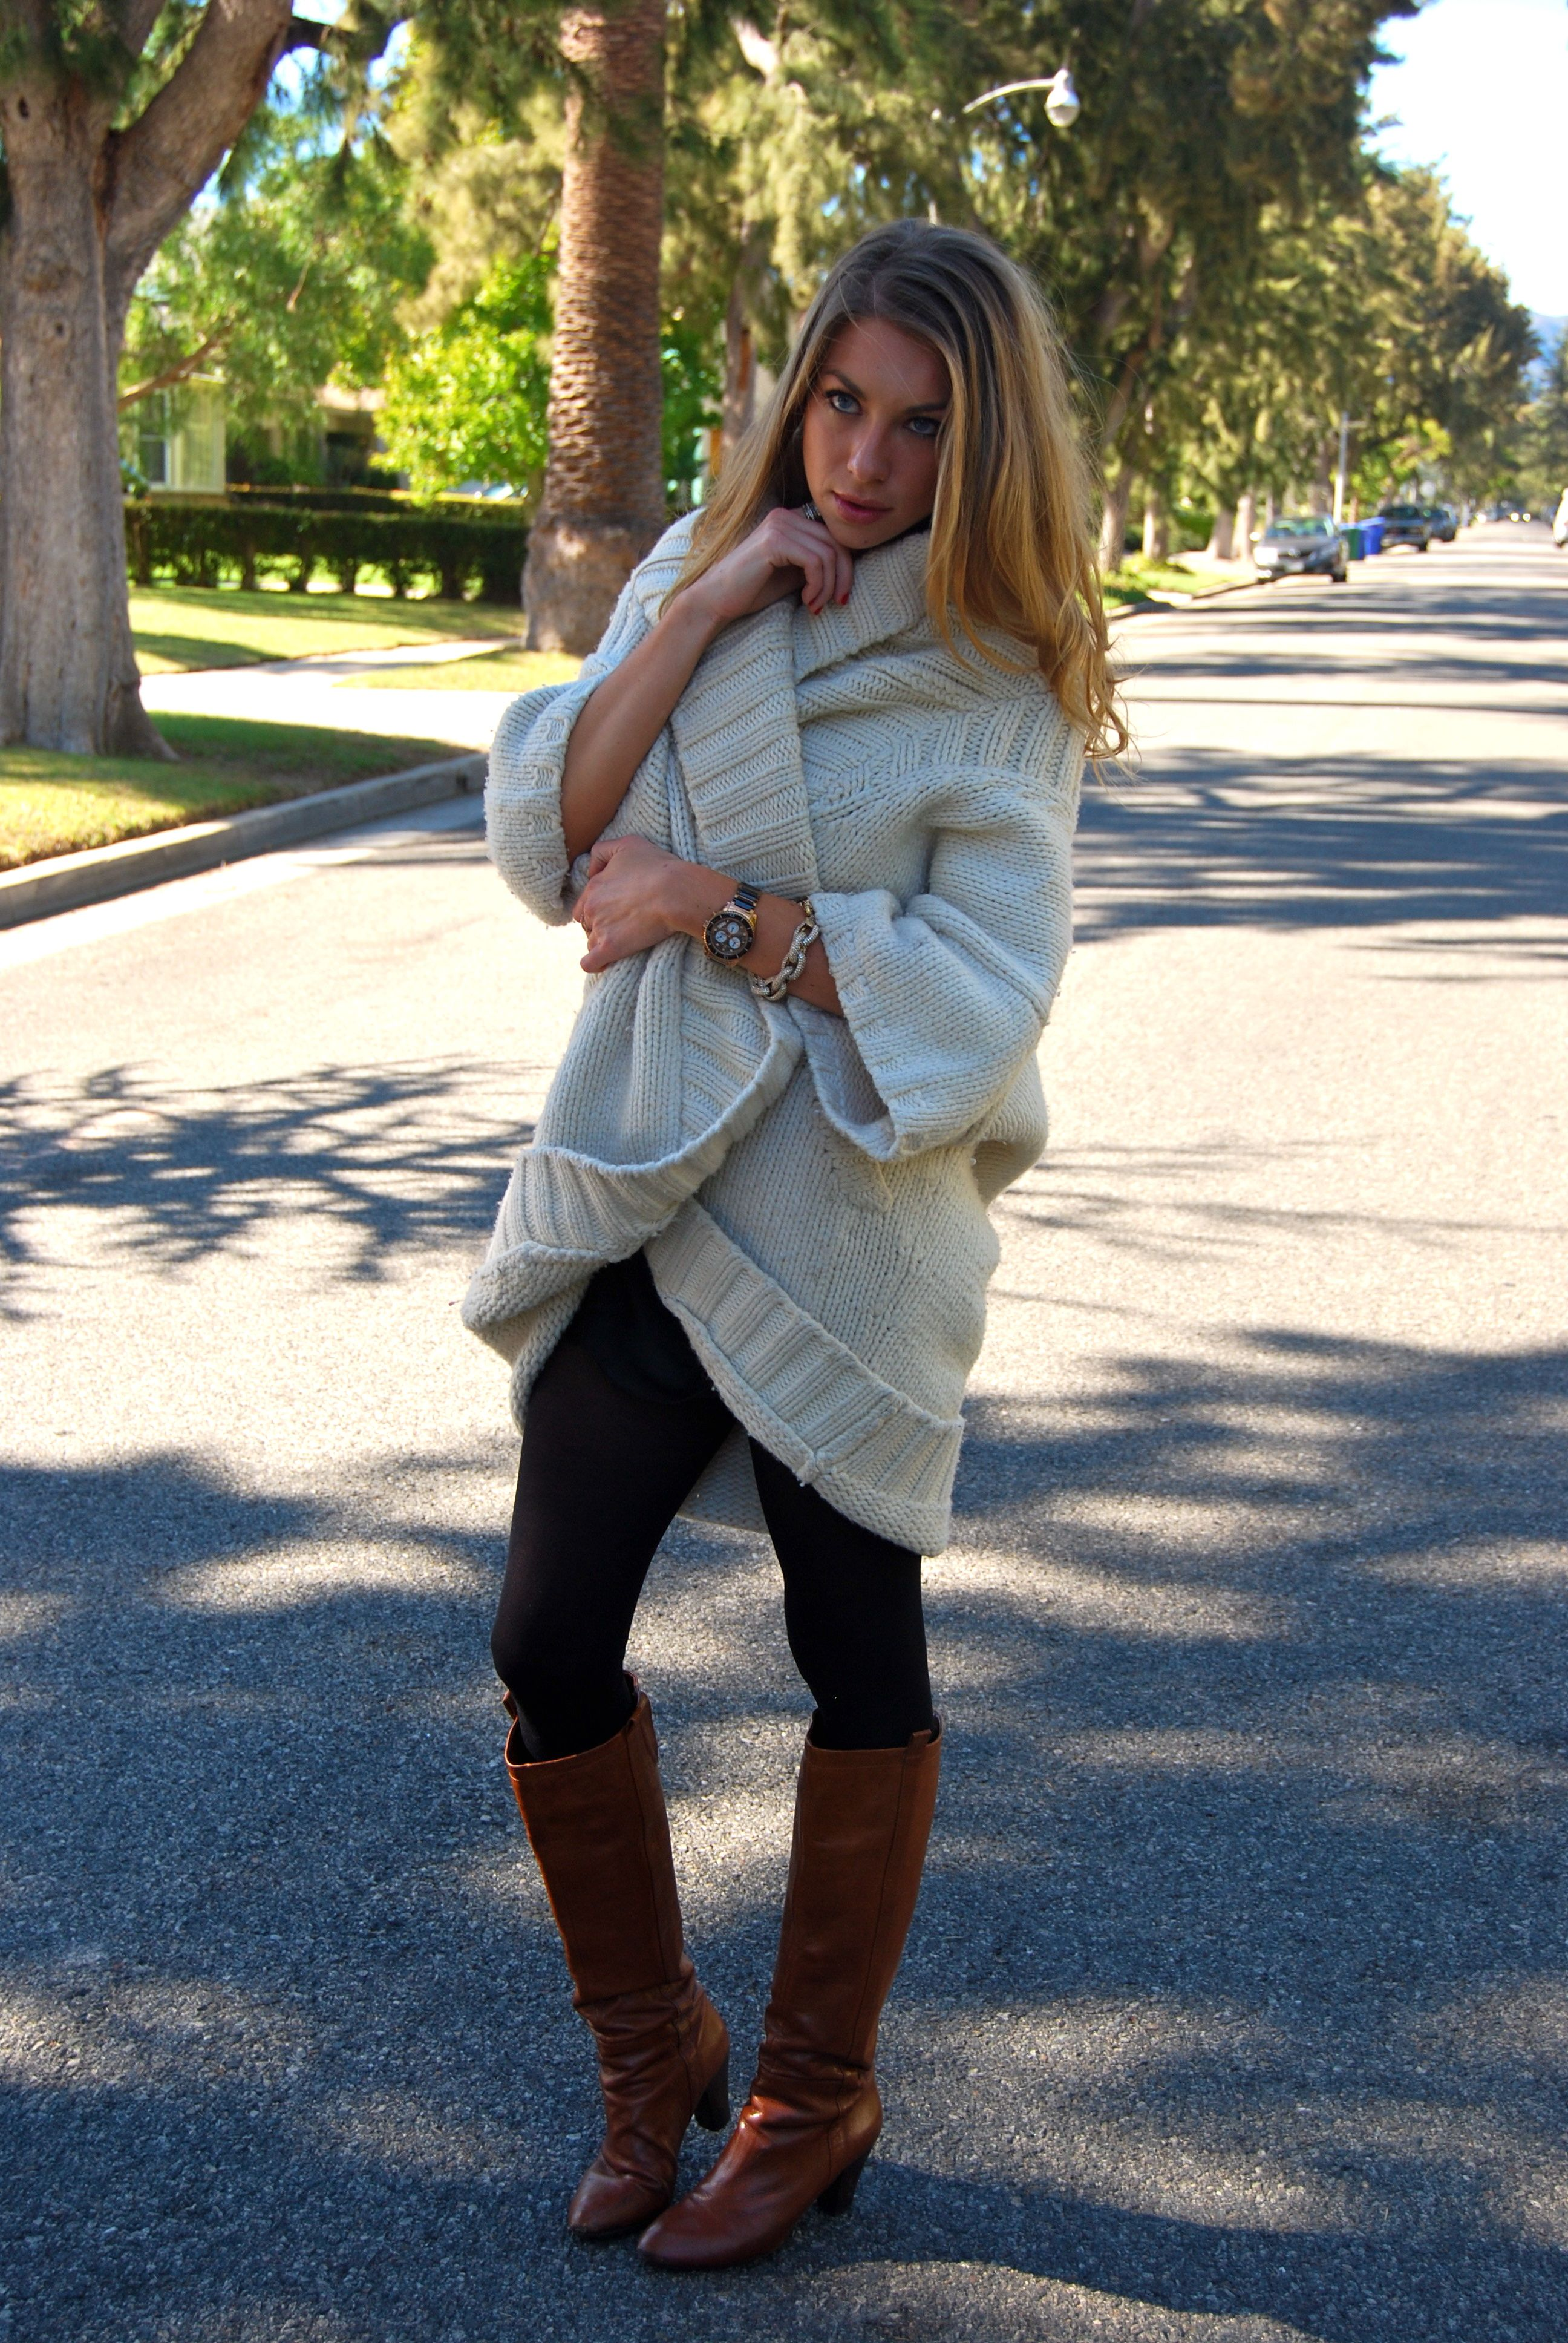 Watch - How to oversized wear sweaters pinterest video